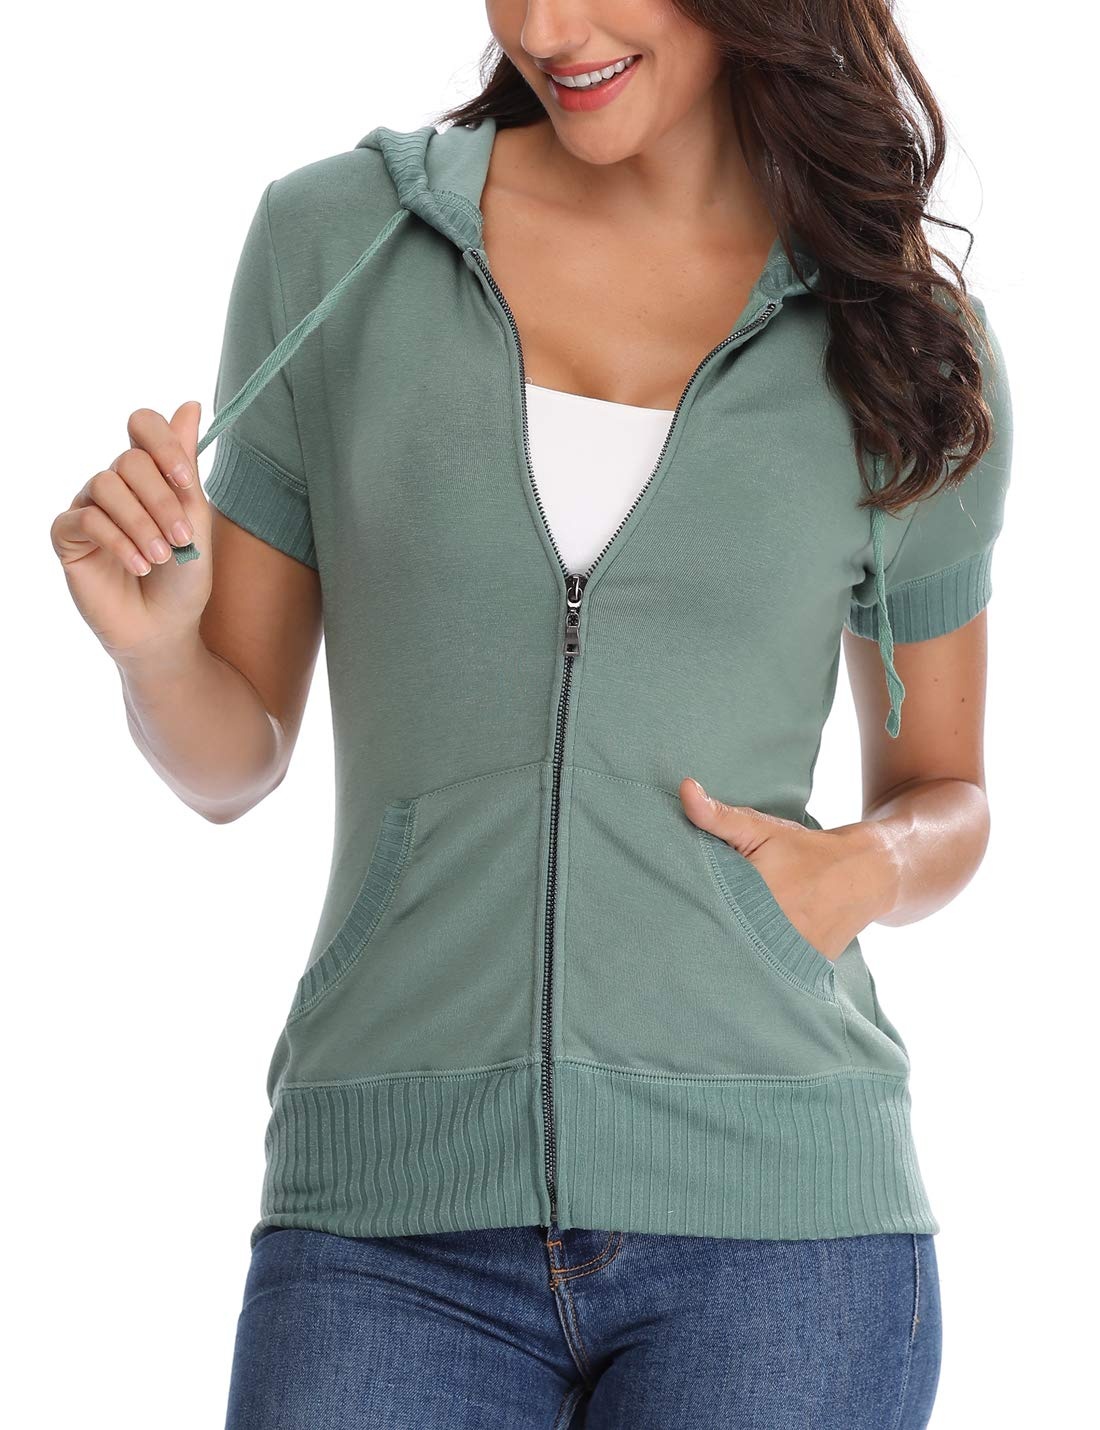 MISS MOLY Hoodie Zip up Short Sleeve Jacket for Women Round Neck Summer Coat (Light Green, Medium/US-10)